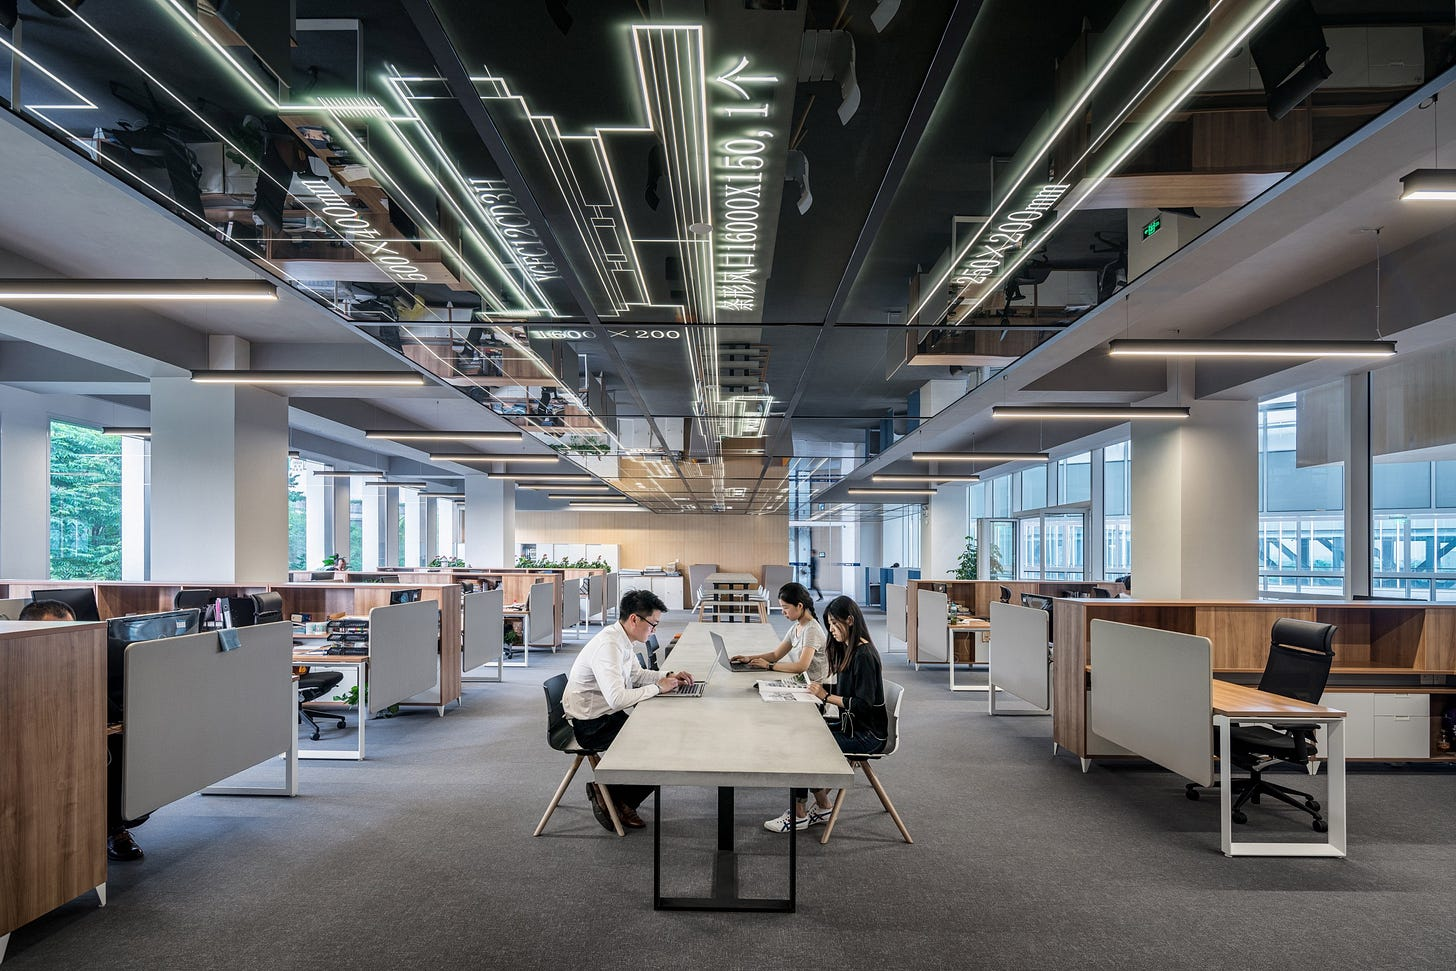 Image of workers working in an open plan office for article by Larry G. Maguire